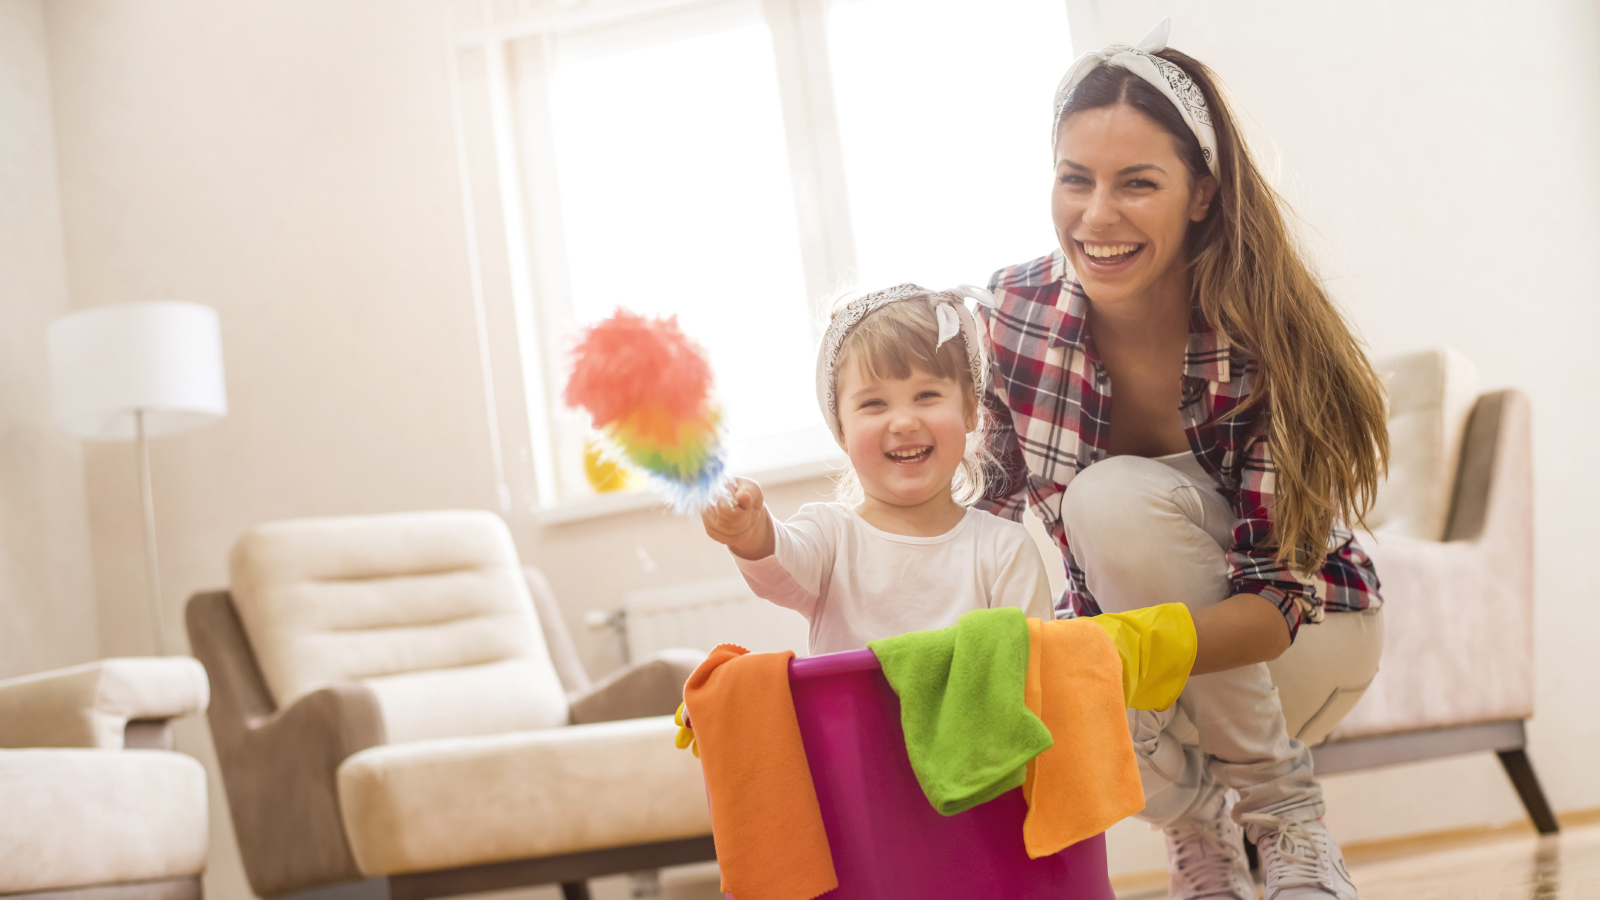 Mother and young daughter cleaning together